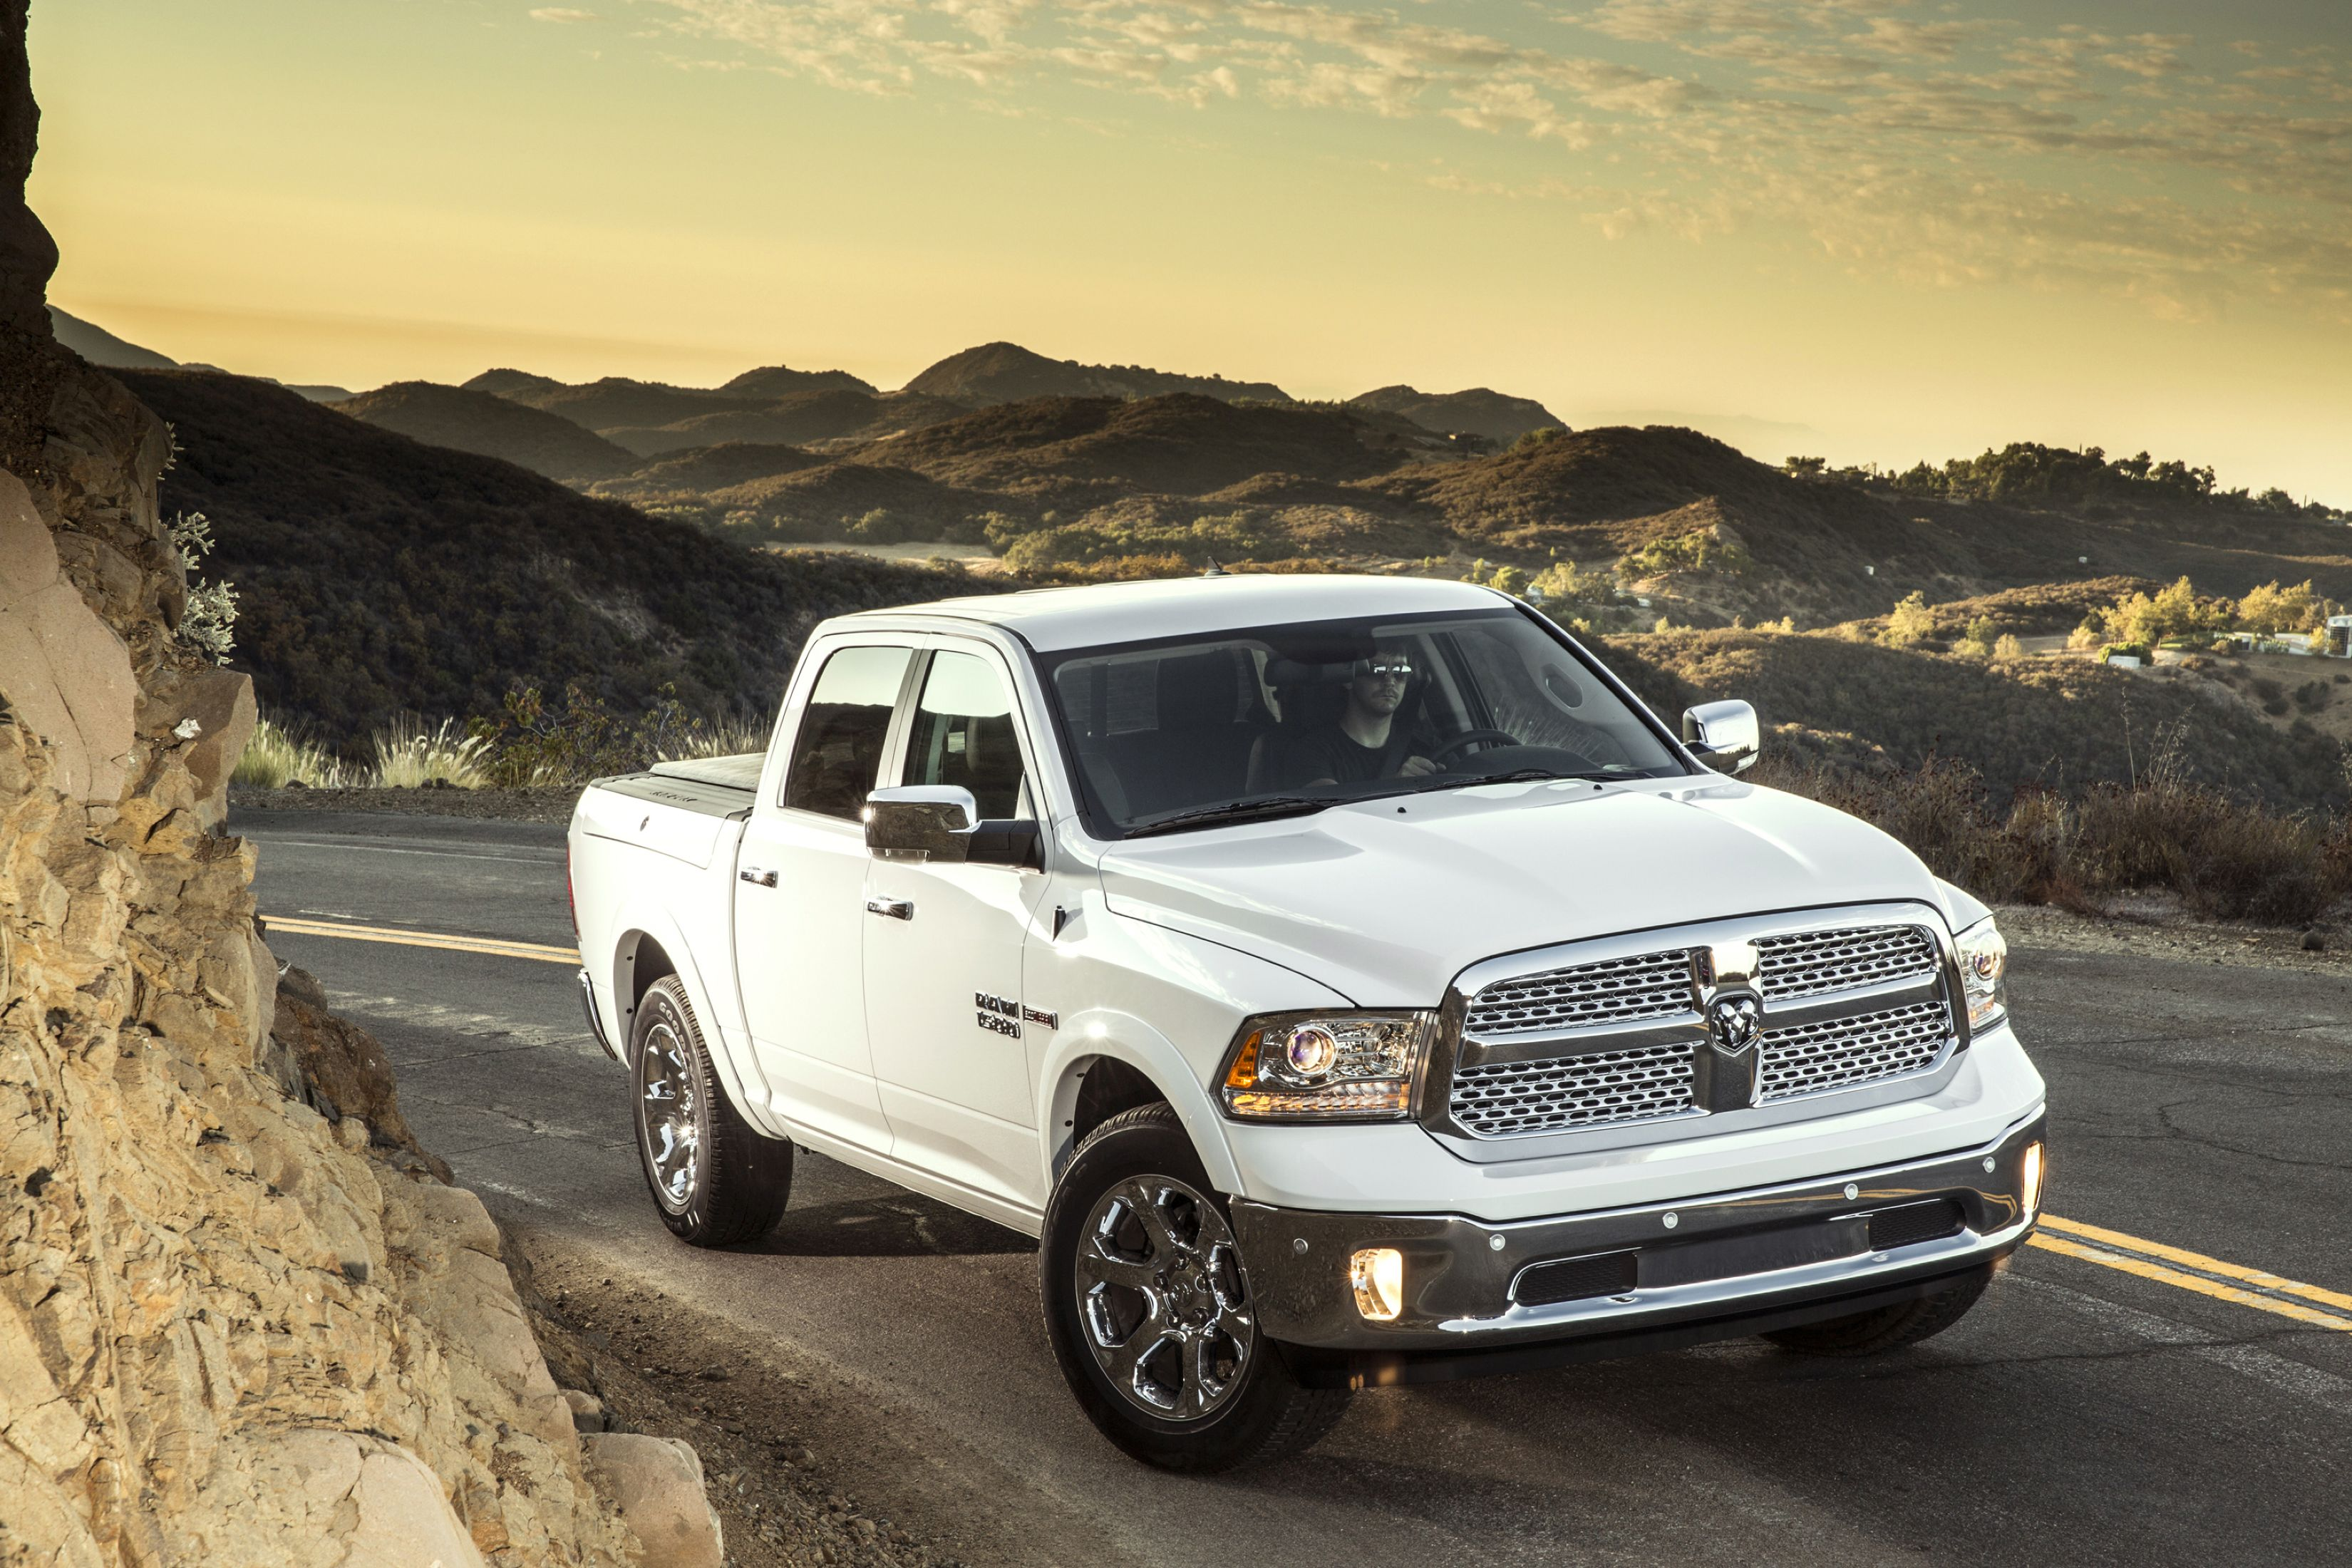 Download free HD Dodge Pickup Trucks White 2014 Image, image